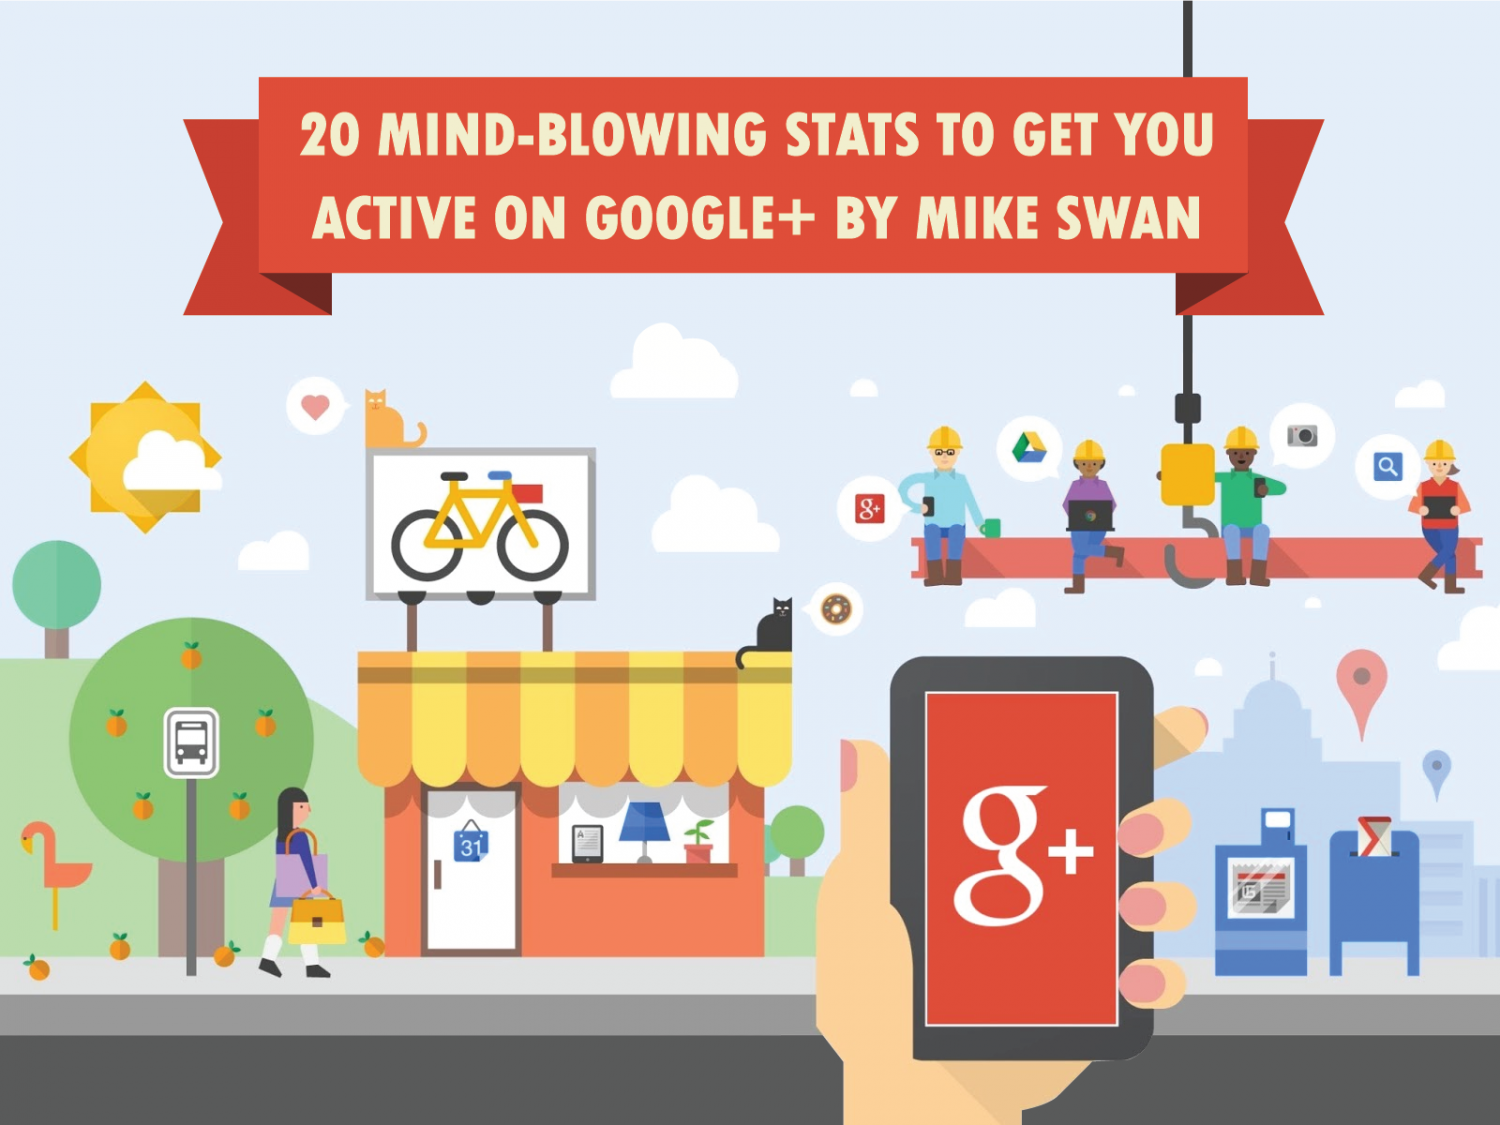 20 Mind-Blowing Stats To Get You Active On Google+ Infographic